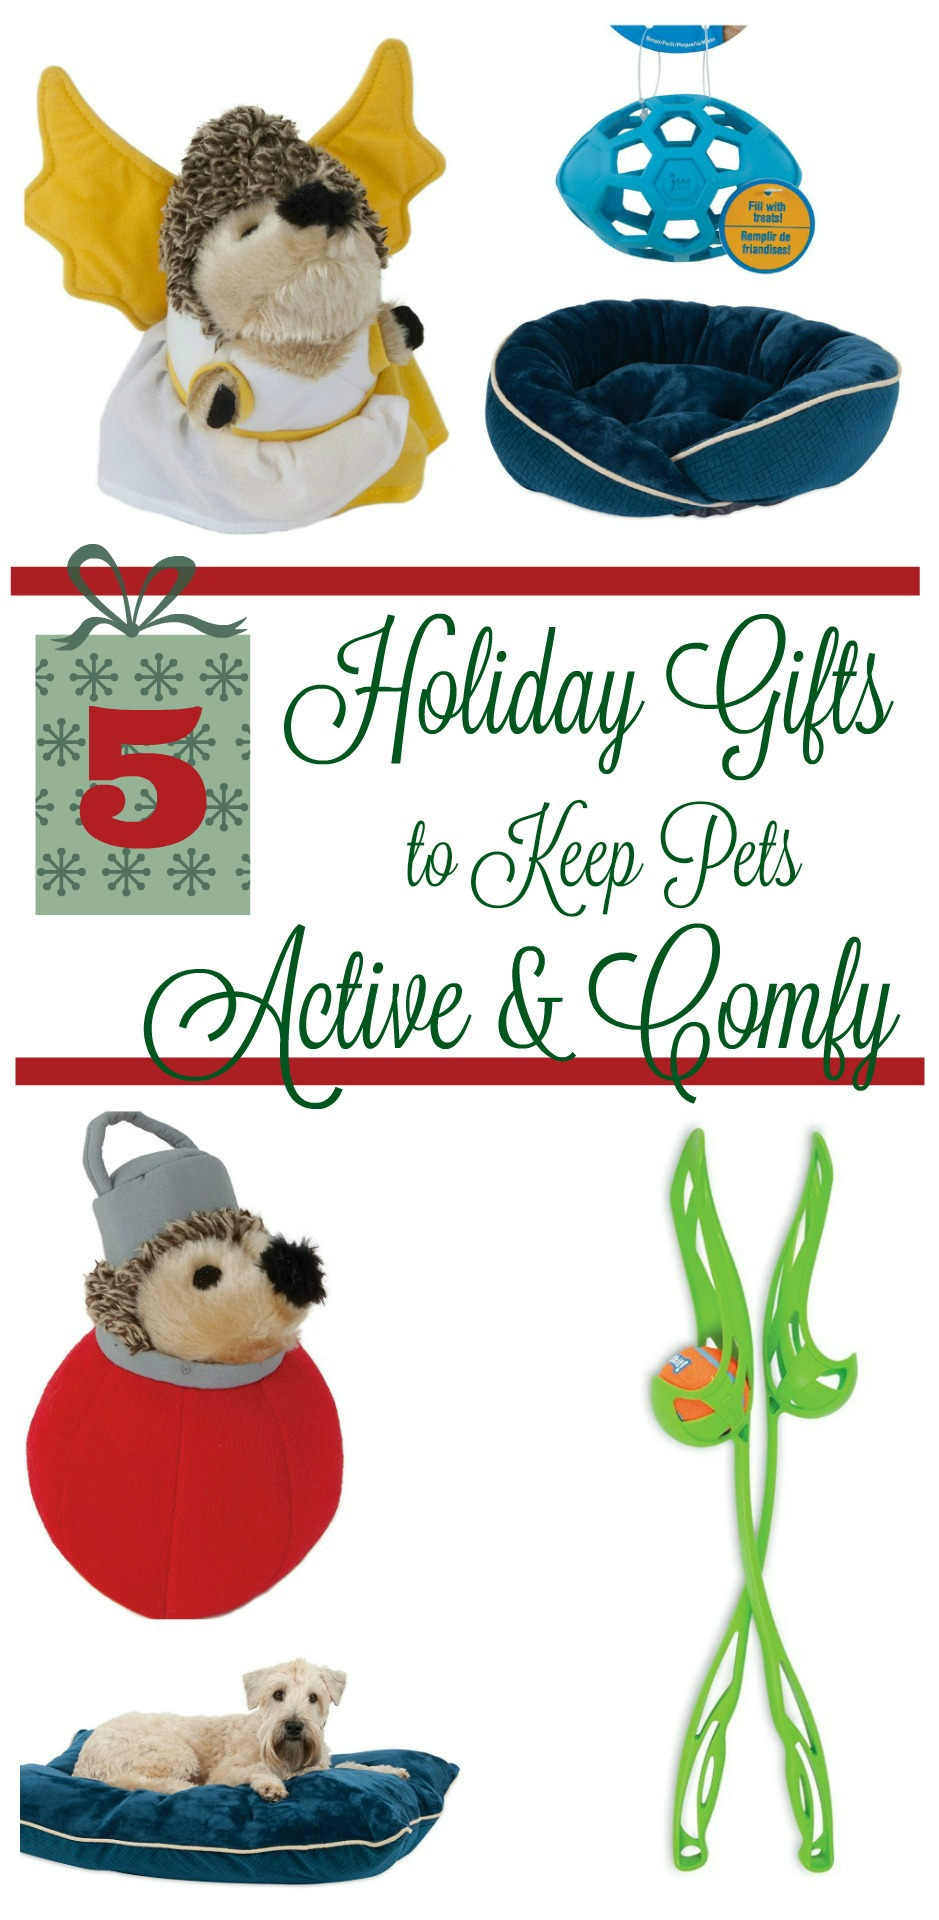 Looking for fun gifts to keep your pets comfy & active during the holidays? Check out our favorite gift ideas from Petmate here!